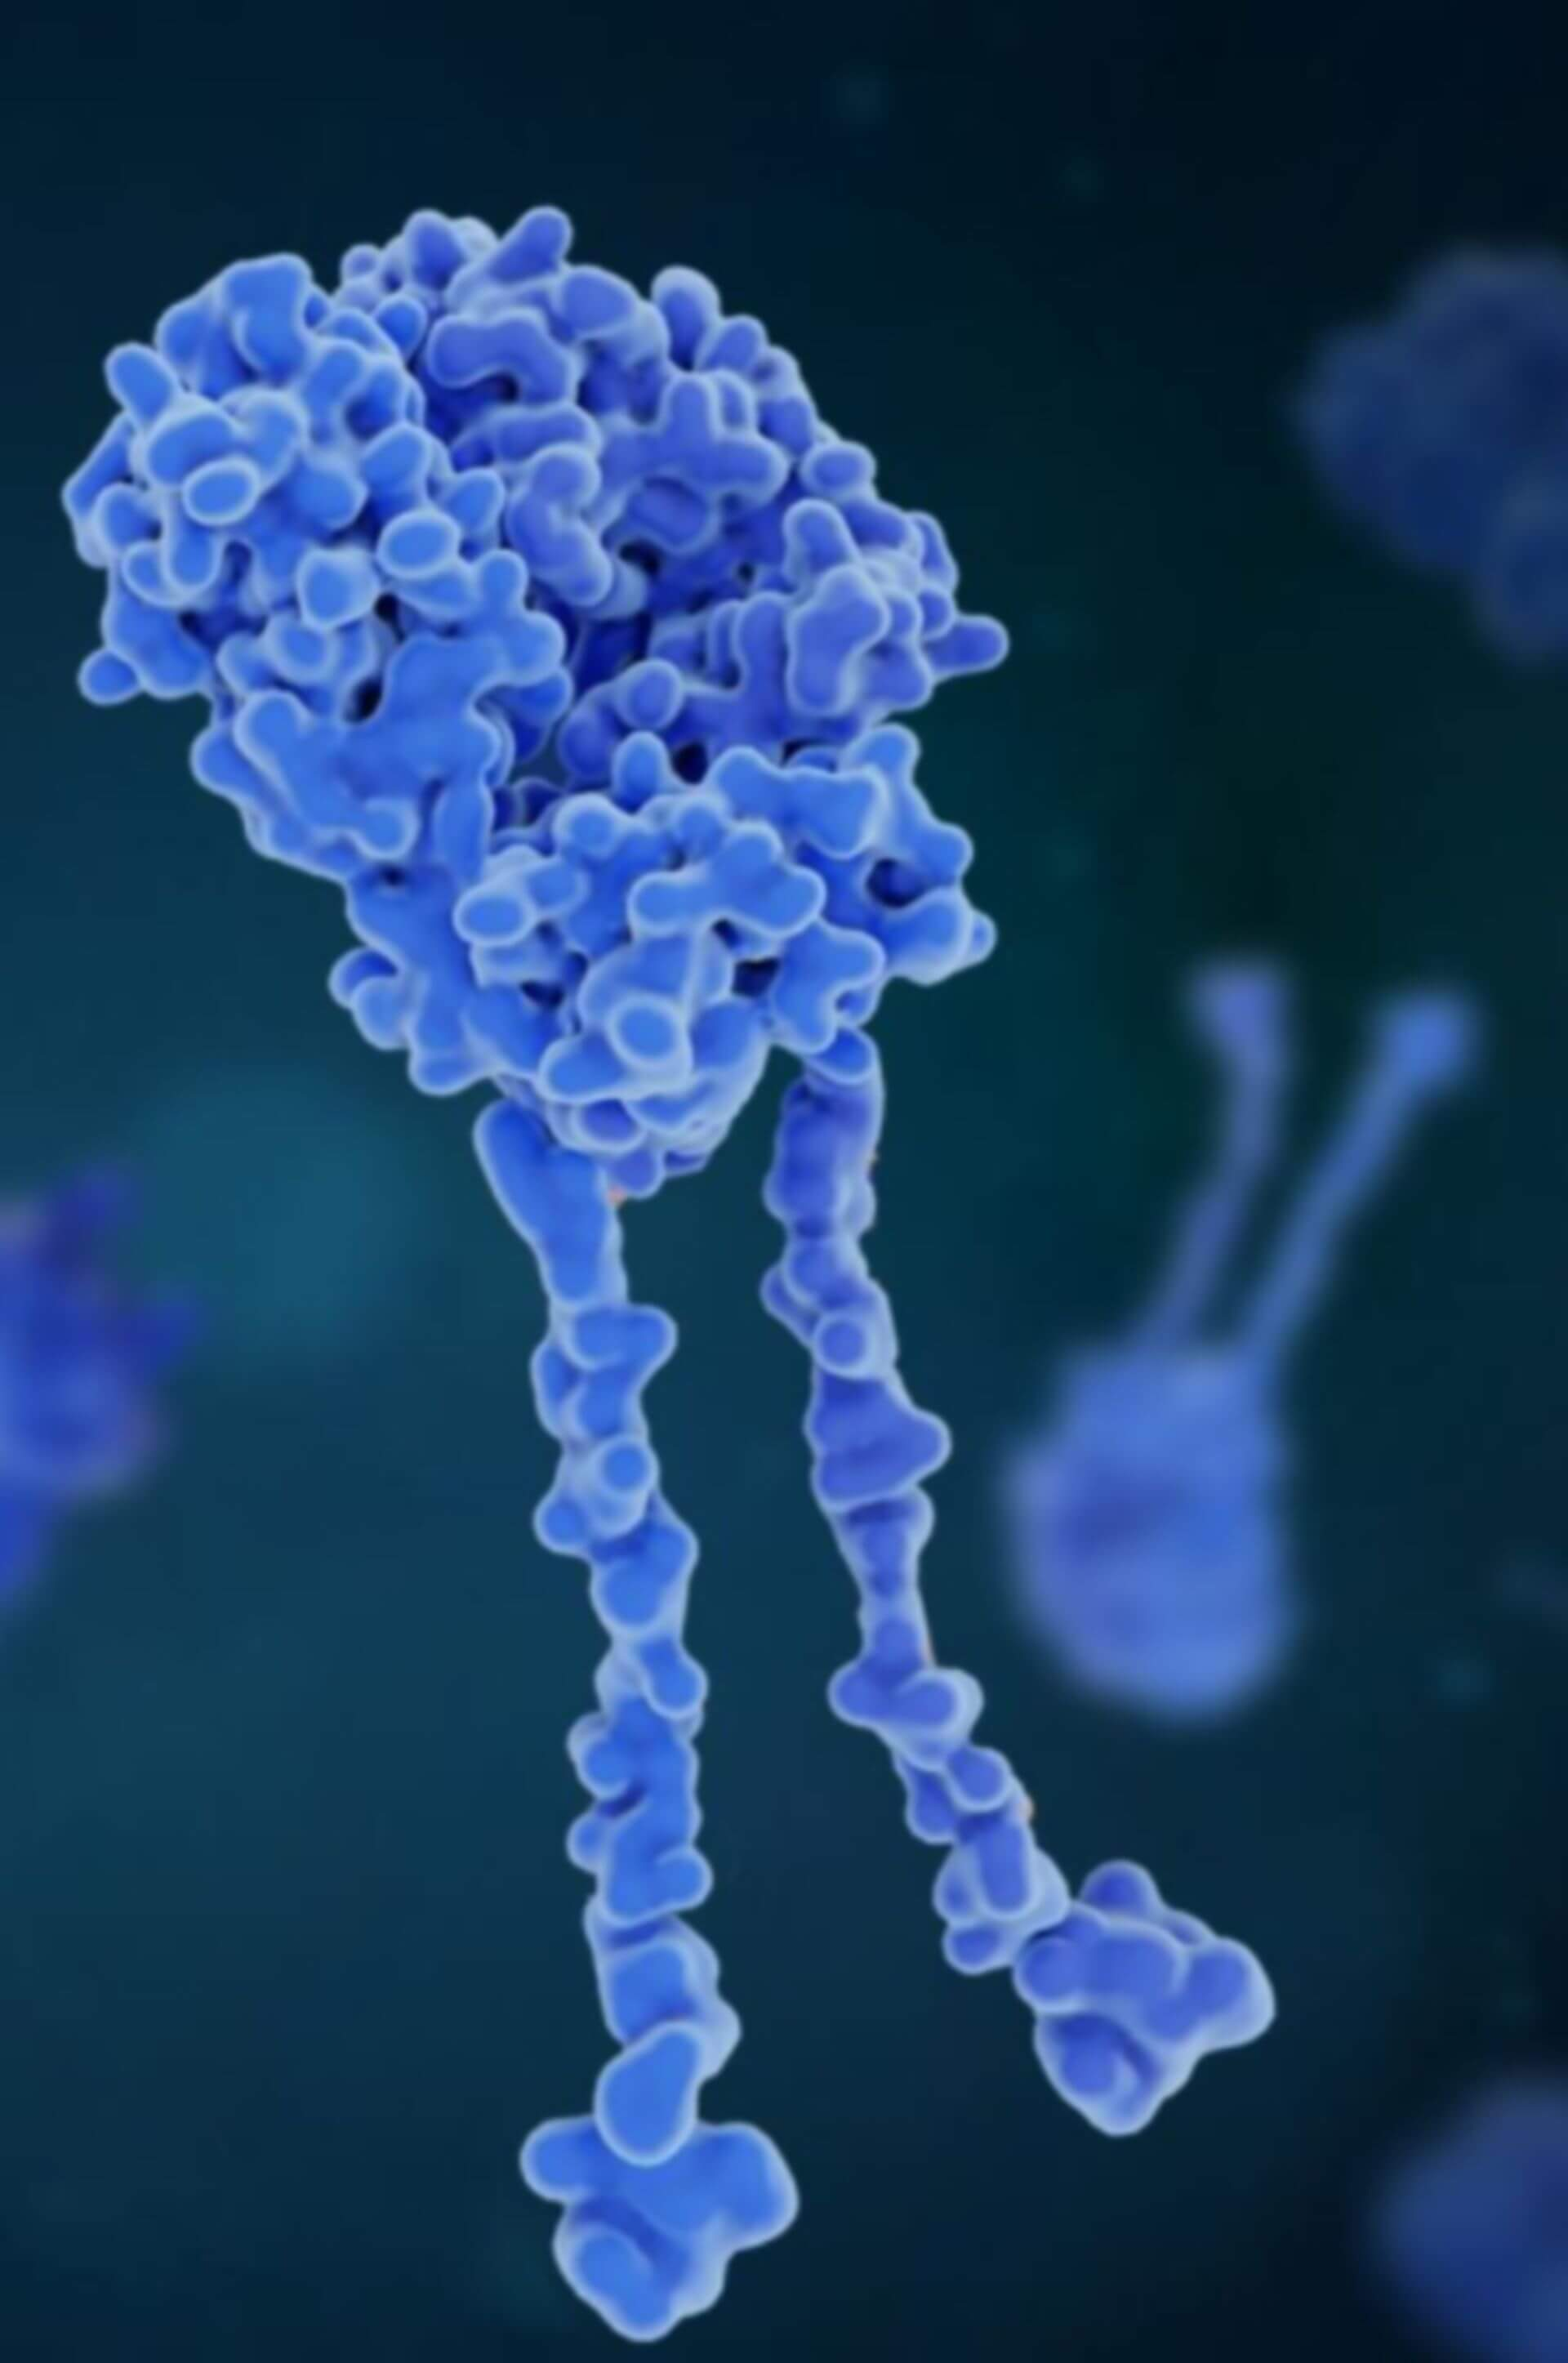 What Are CAR-T Therapies